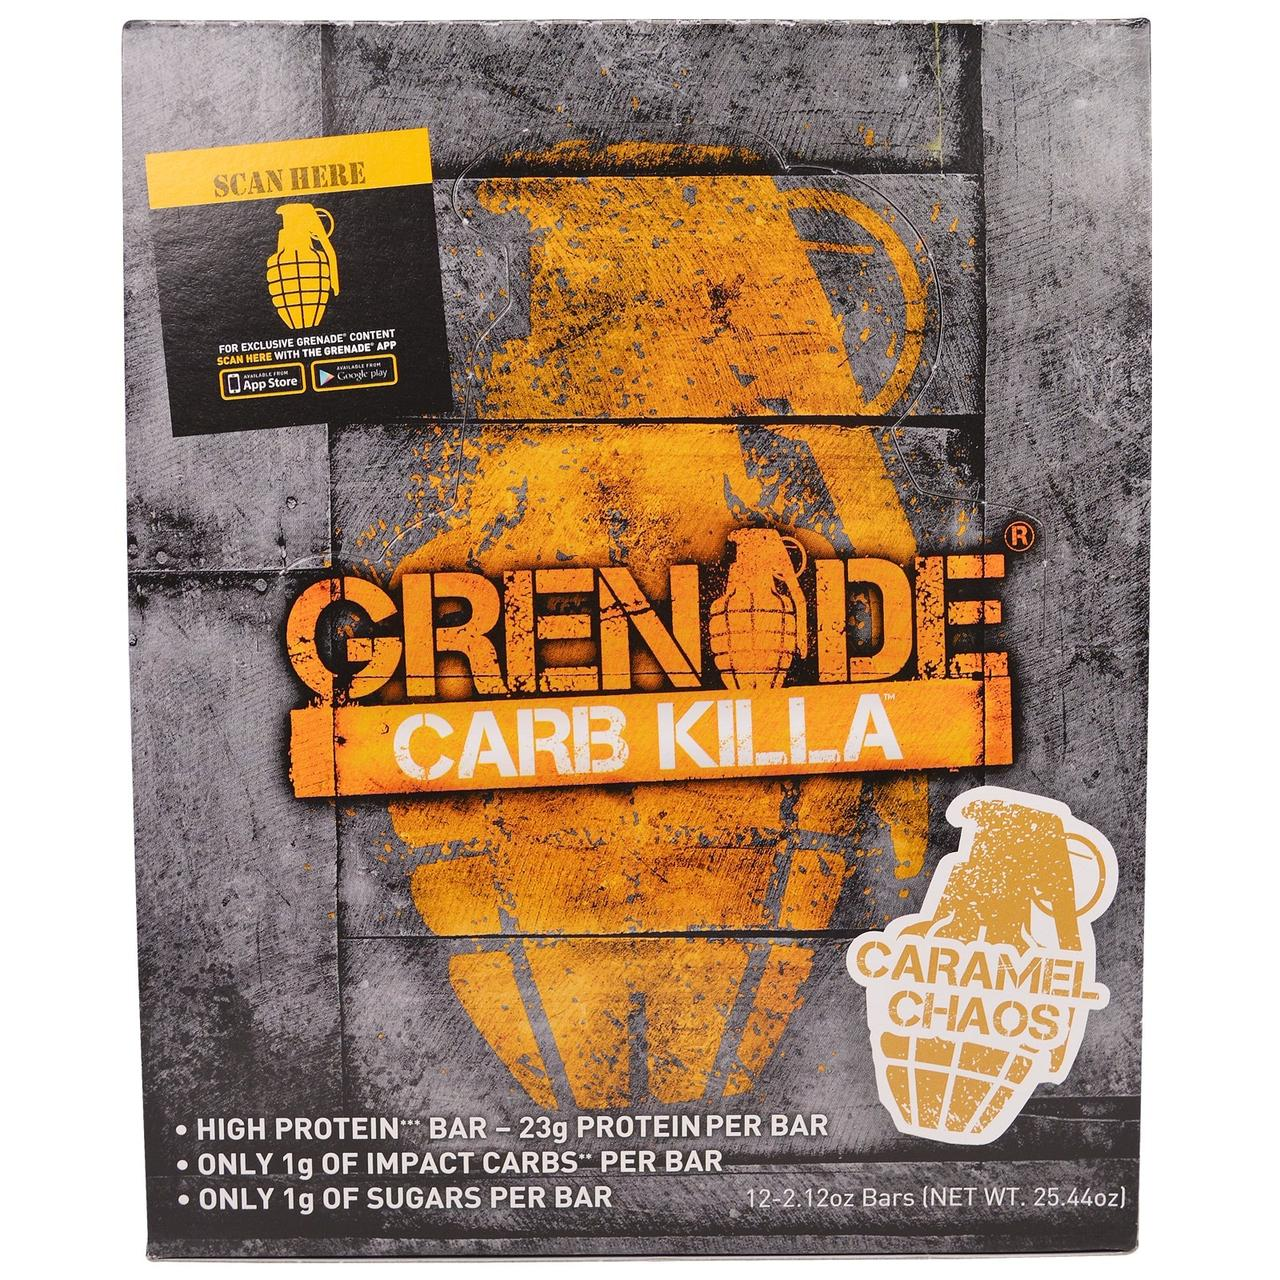 Grenade, Carb Killa Bar, Caramel Chaos, 12-2.12 oz bars , Net Wt 25.44 oz